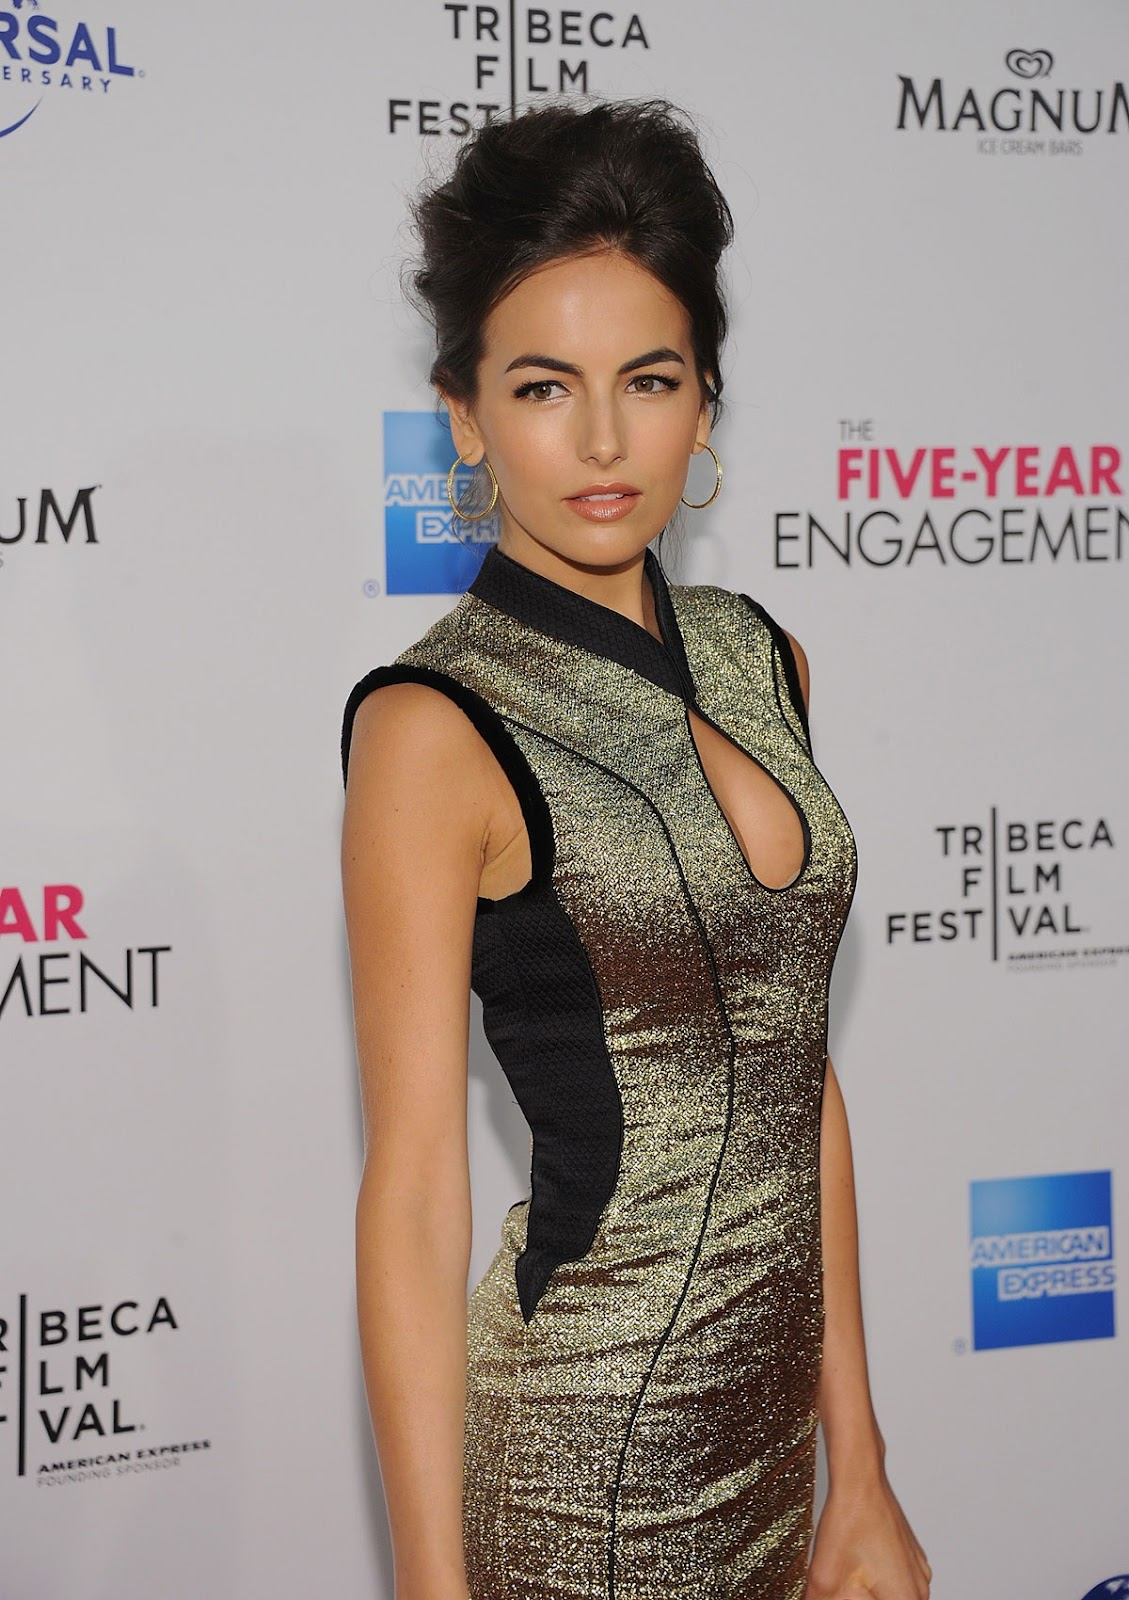 http://1.bp.blogspot.com/-_UwG356pupM/T5A6BlcpvpI/AAAAAAAABB8/SWMro0wghHM/s1600/CAMILLA-BELLE-The-Five-Year-Engagement-Premiere-in-New-York-phot-01.jpg